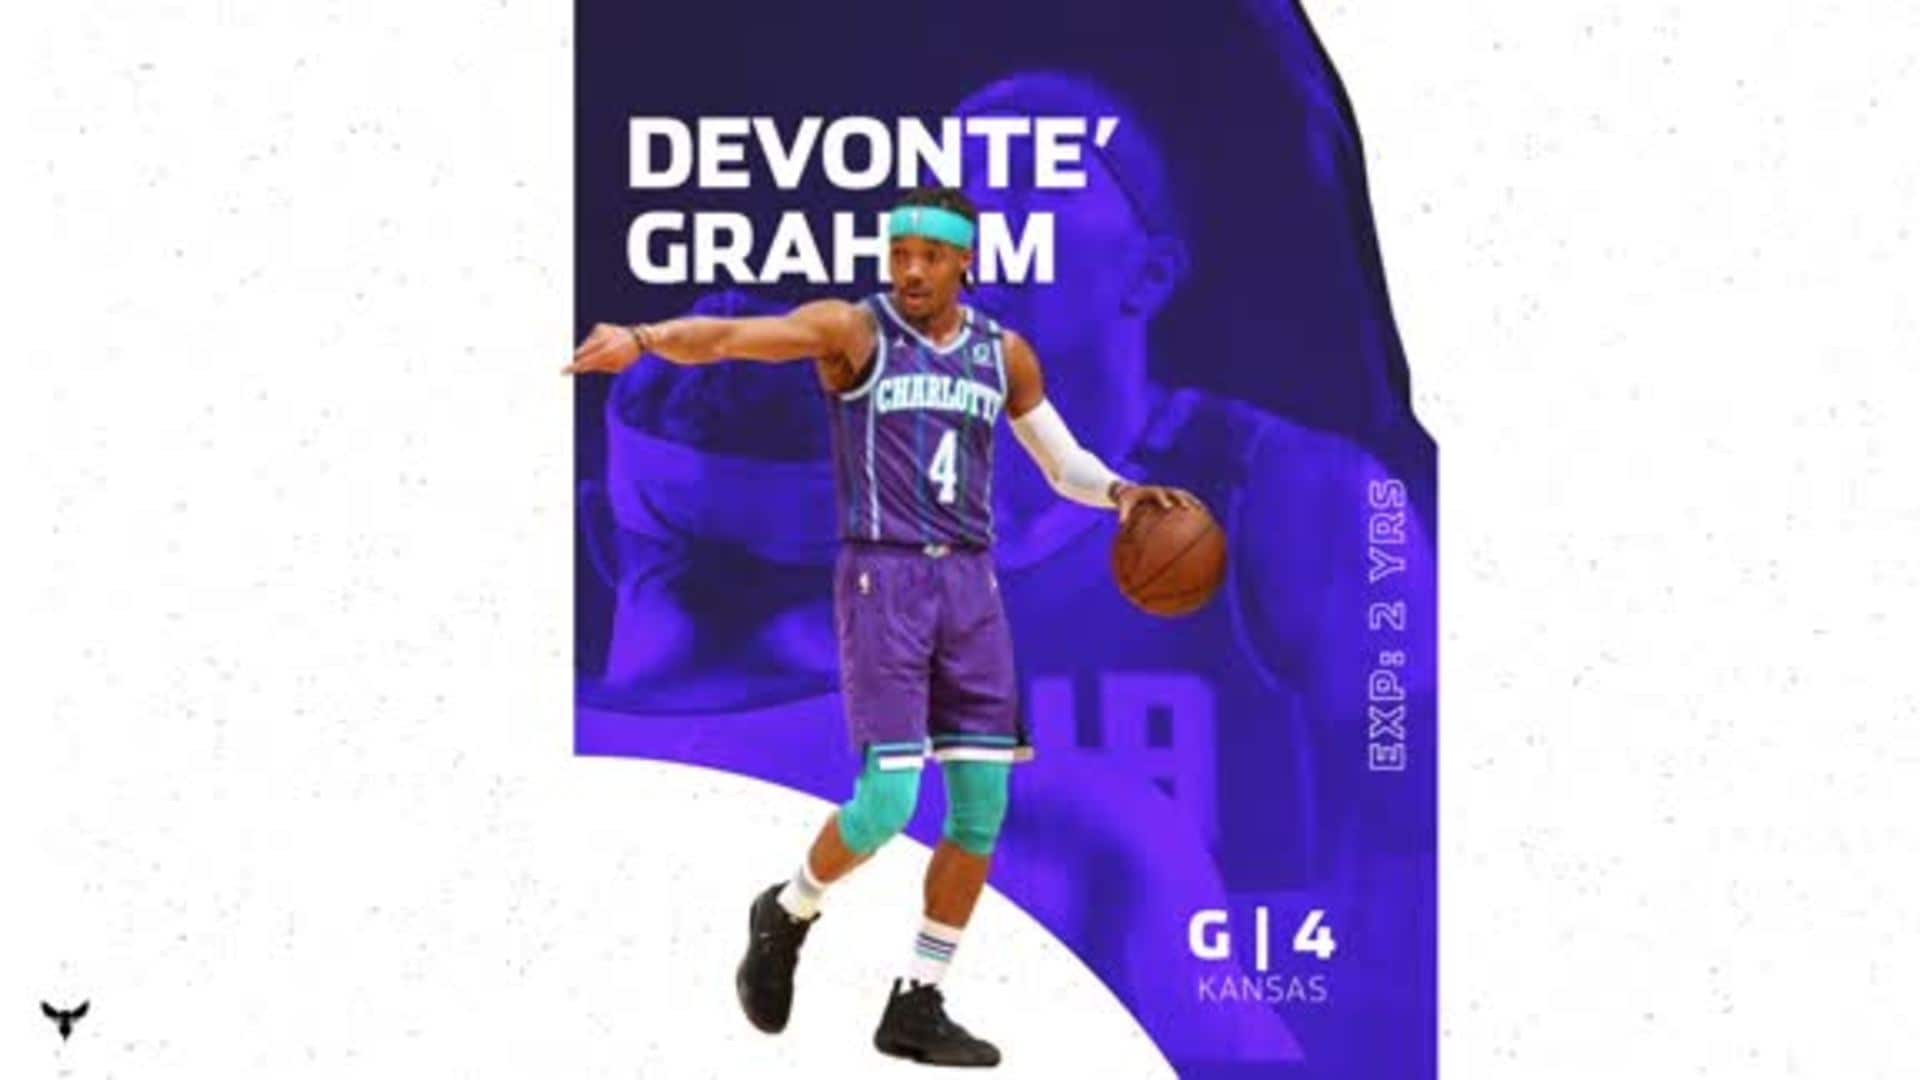 2019-20 Season Recap: Devonte' Graham